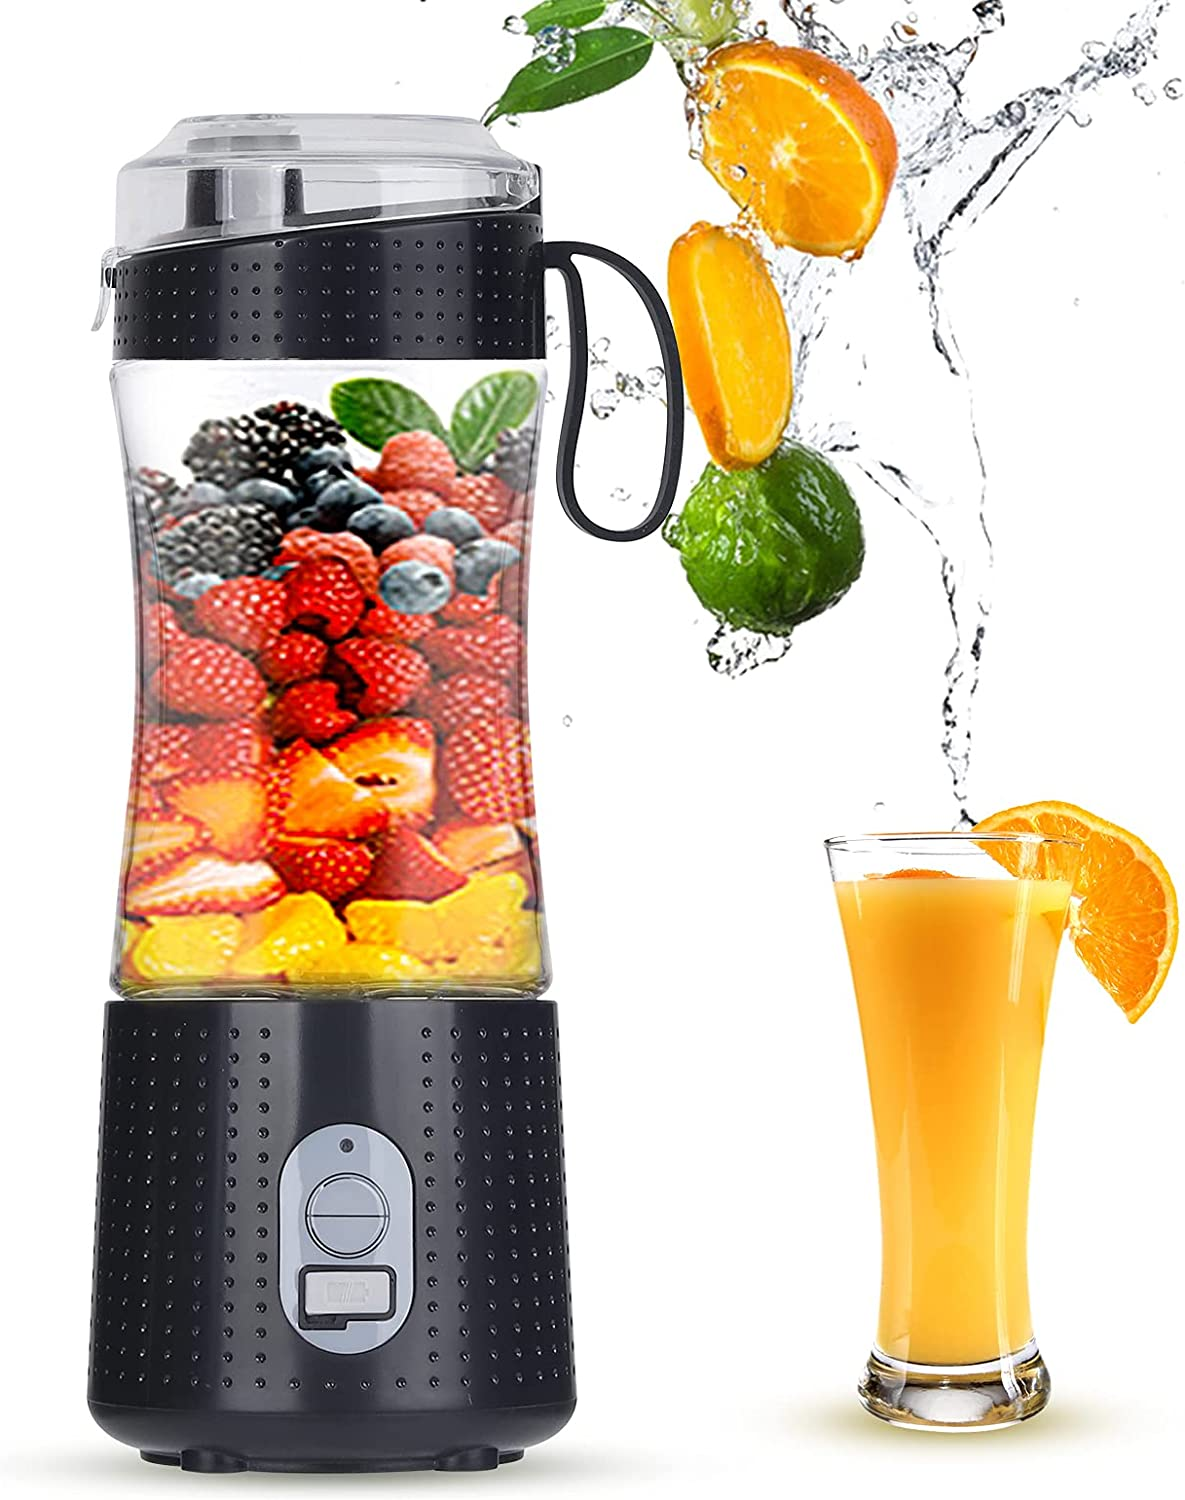 Multifunctional Portable Blender, Juicer Mini Blender for Smoothies, Shakes and Juice, Personal Size Blender USB Rechargeable with Six Blades, Juicer Detachable Cup for Home, Office, Travel and Outdoor (4000mAh, 380ml)